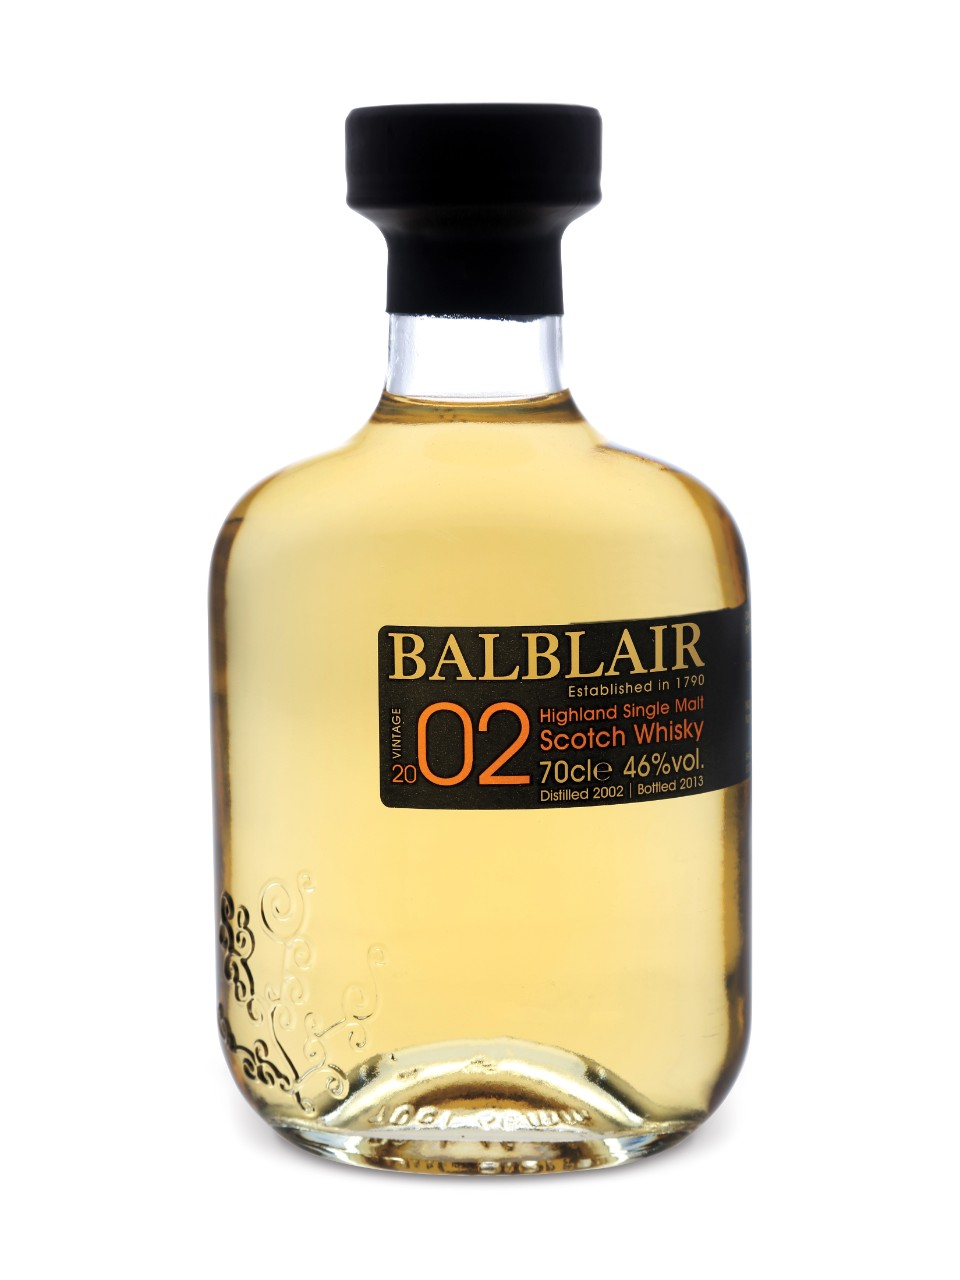 Balblair 2002 Highland Single Malt Scotch Whisky